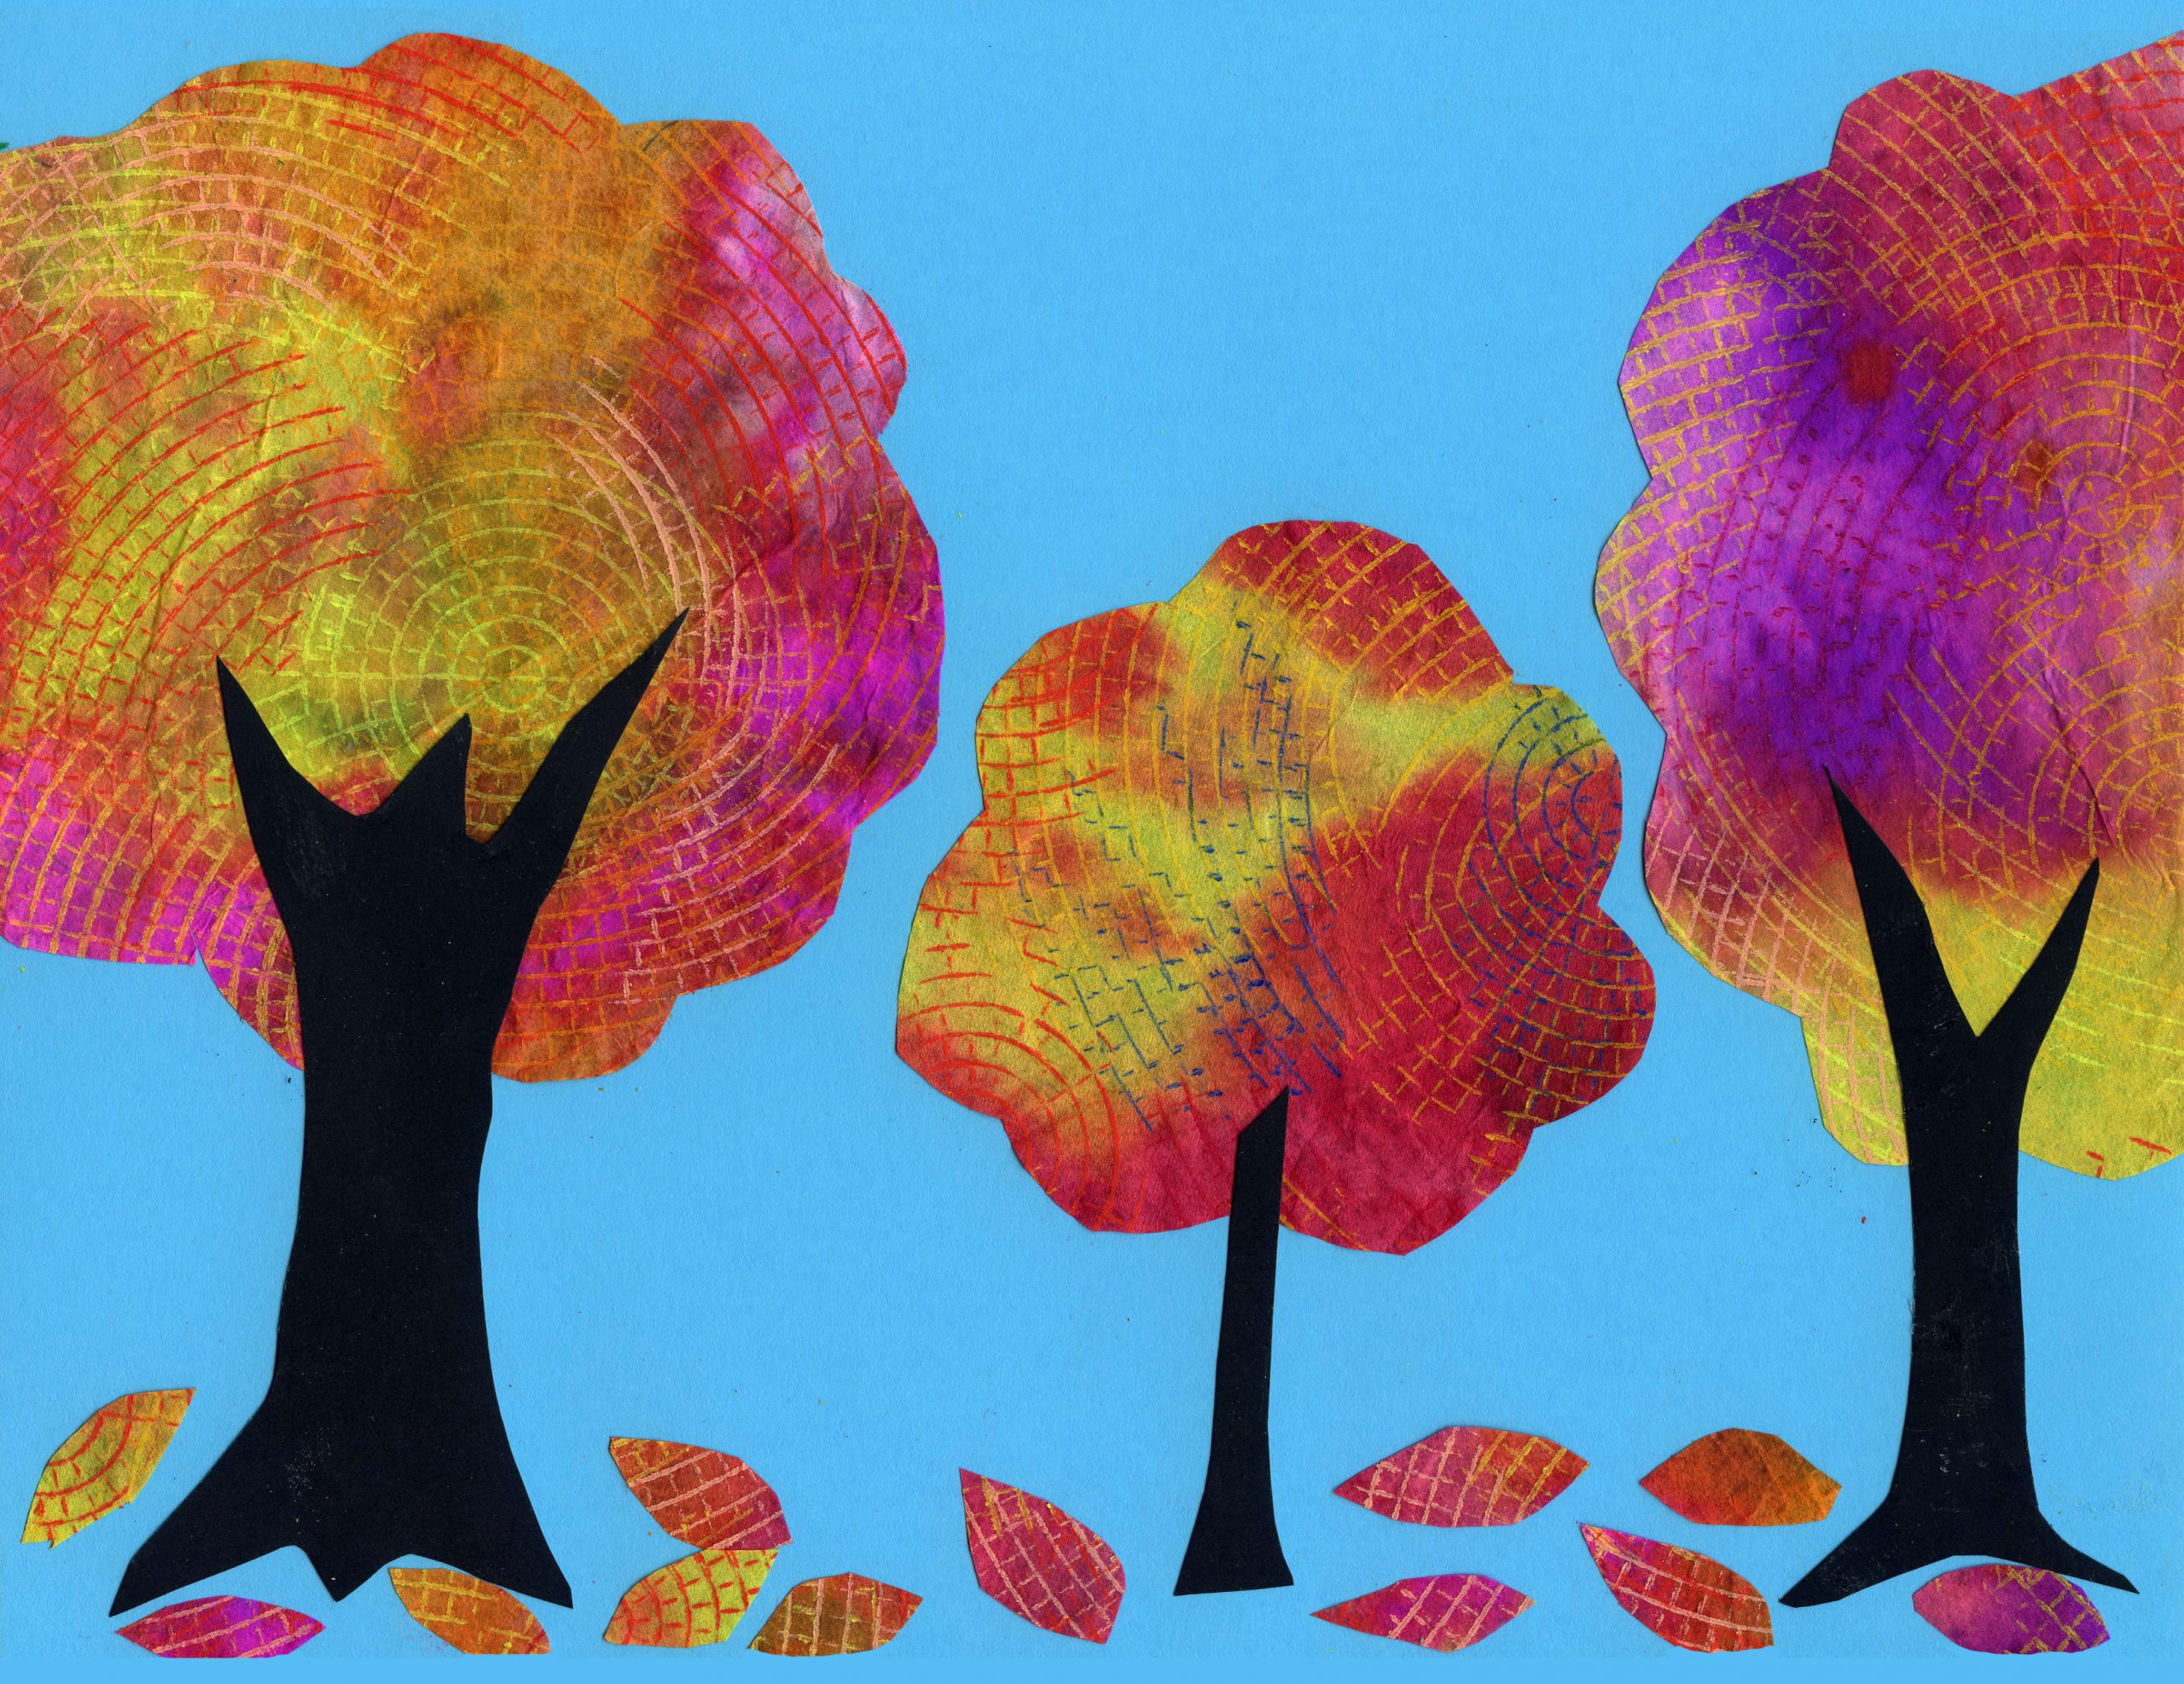 Coffee filter tree art projects for kids for Cool art ideas for kids